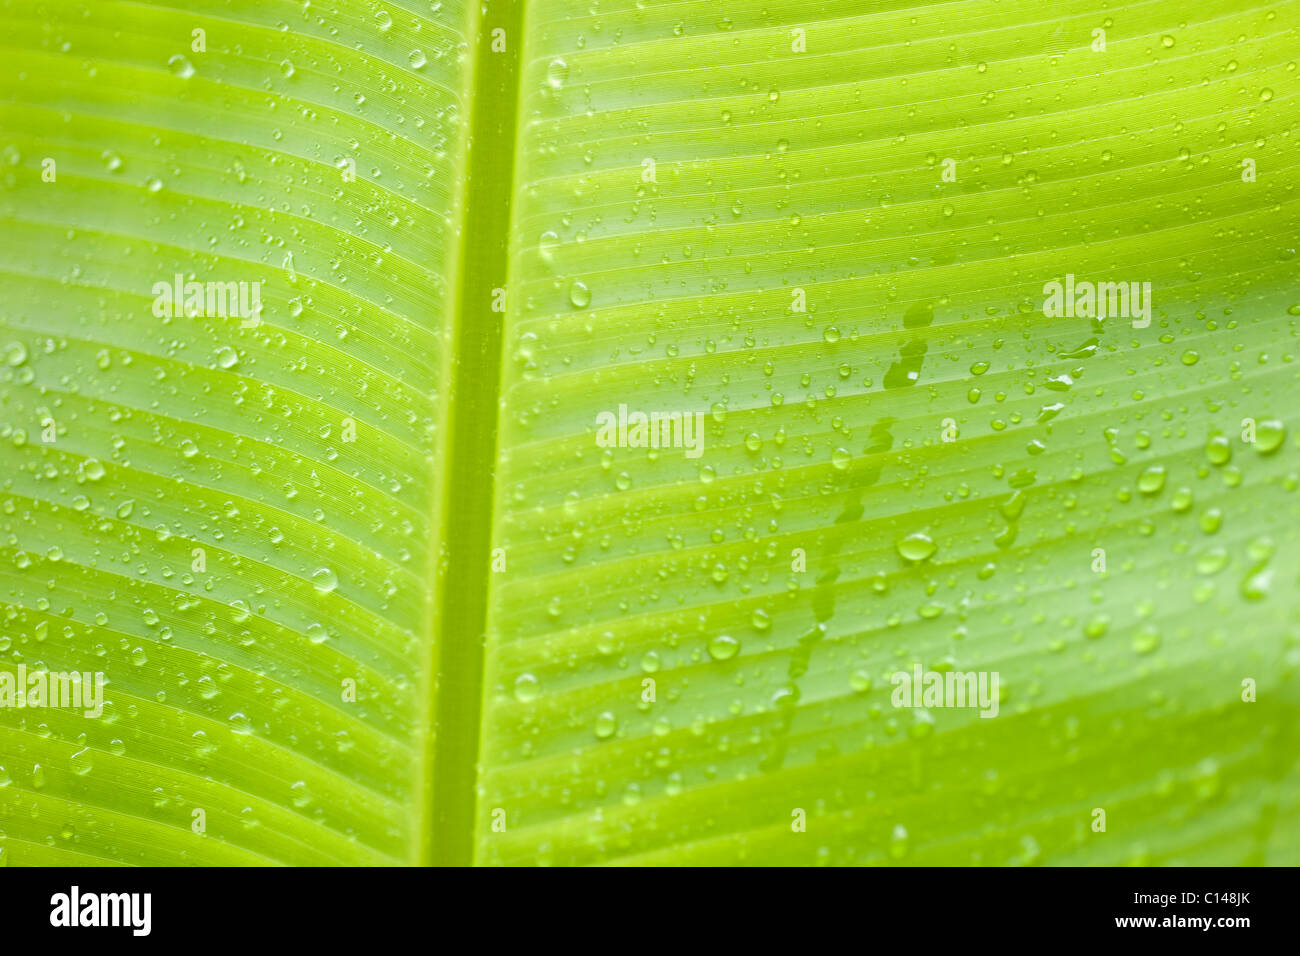 Close up of banana leaf, Amazon Rainforest, South America - Stock Image